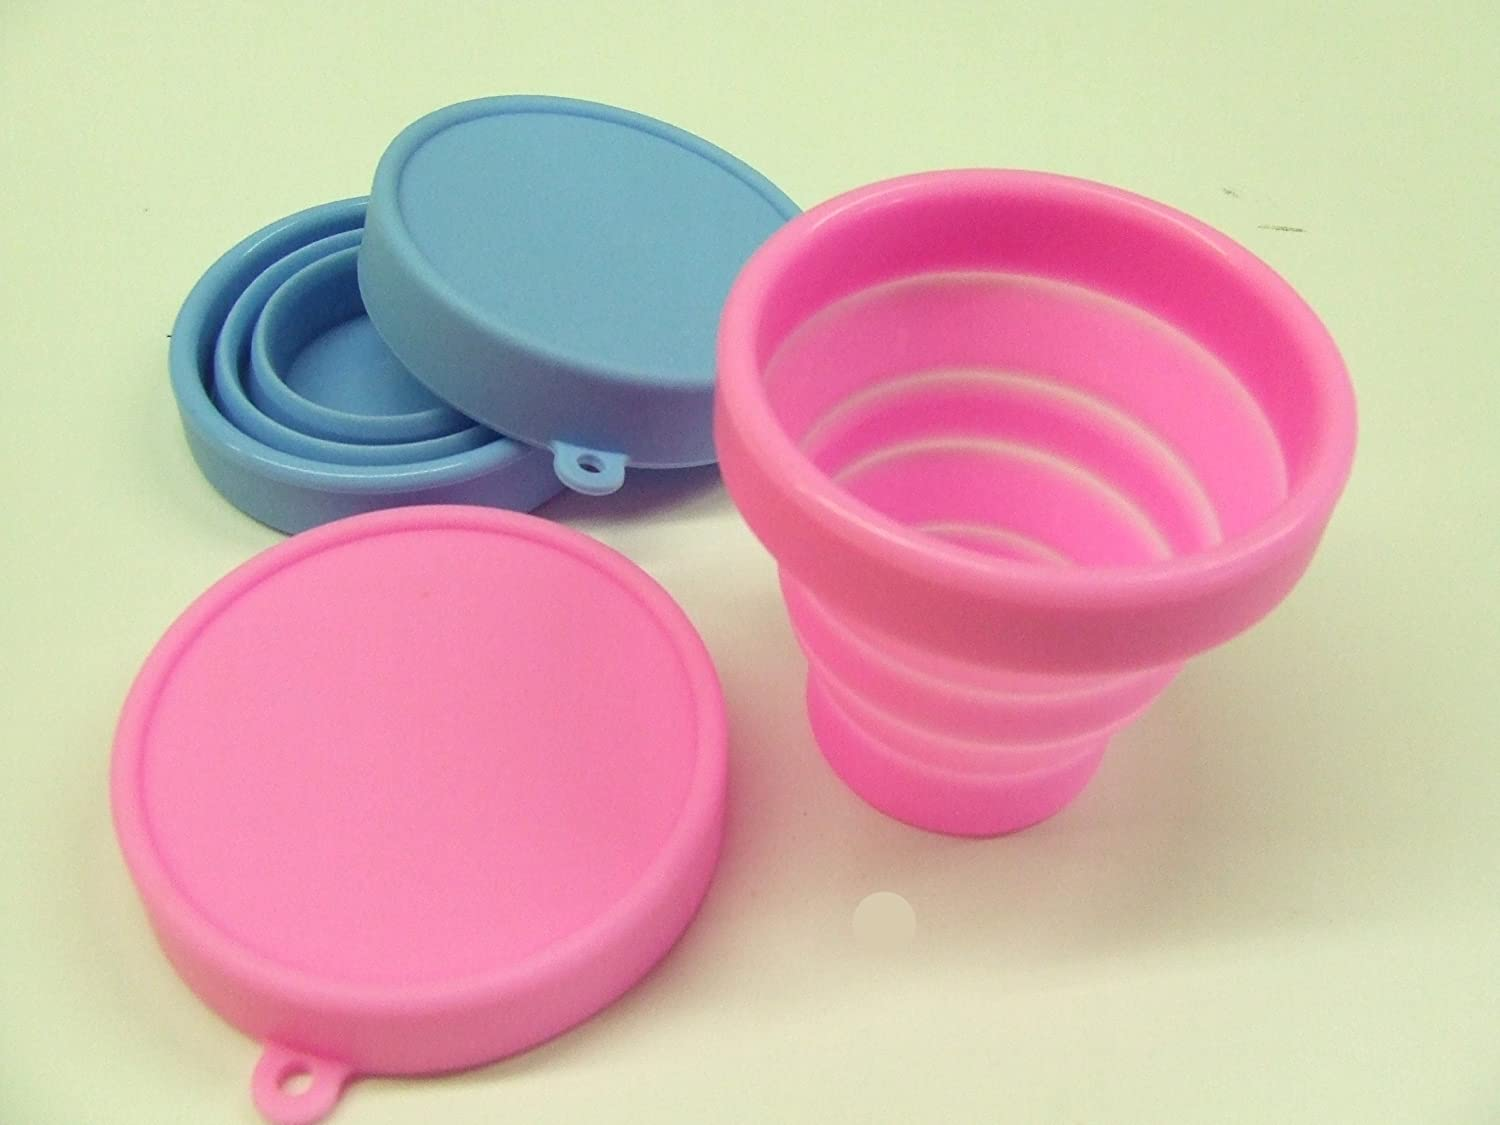 2 x Collapsible beakers Silicone CUPS /& LIDS compact space saving camping handy flask 2x Pink